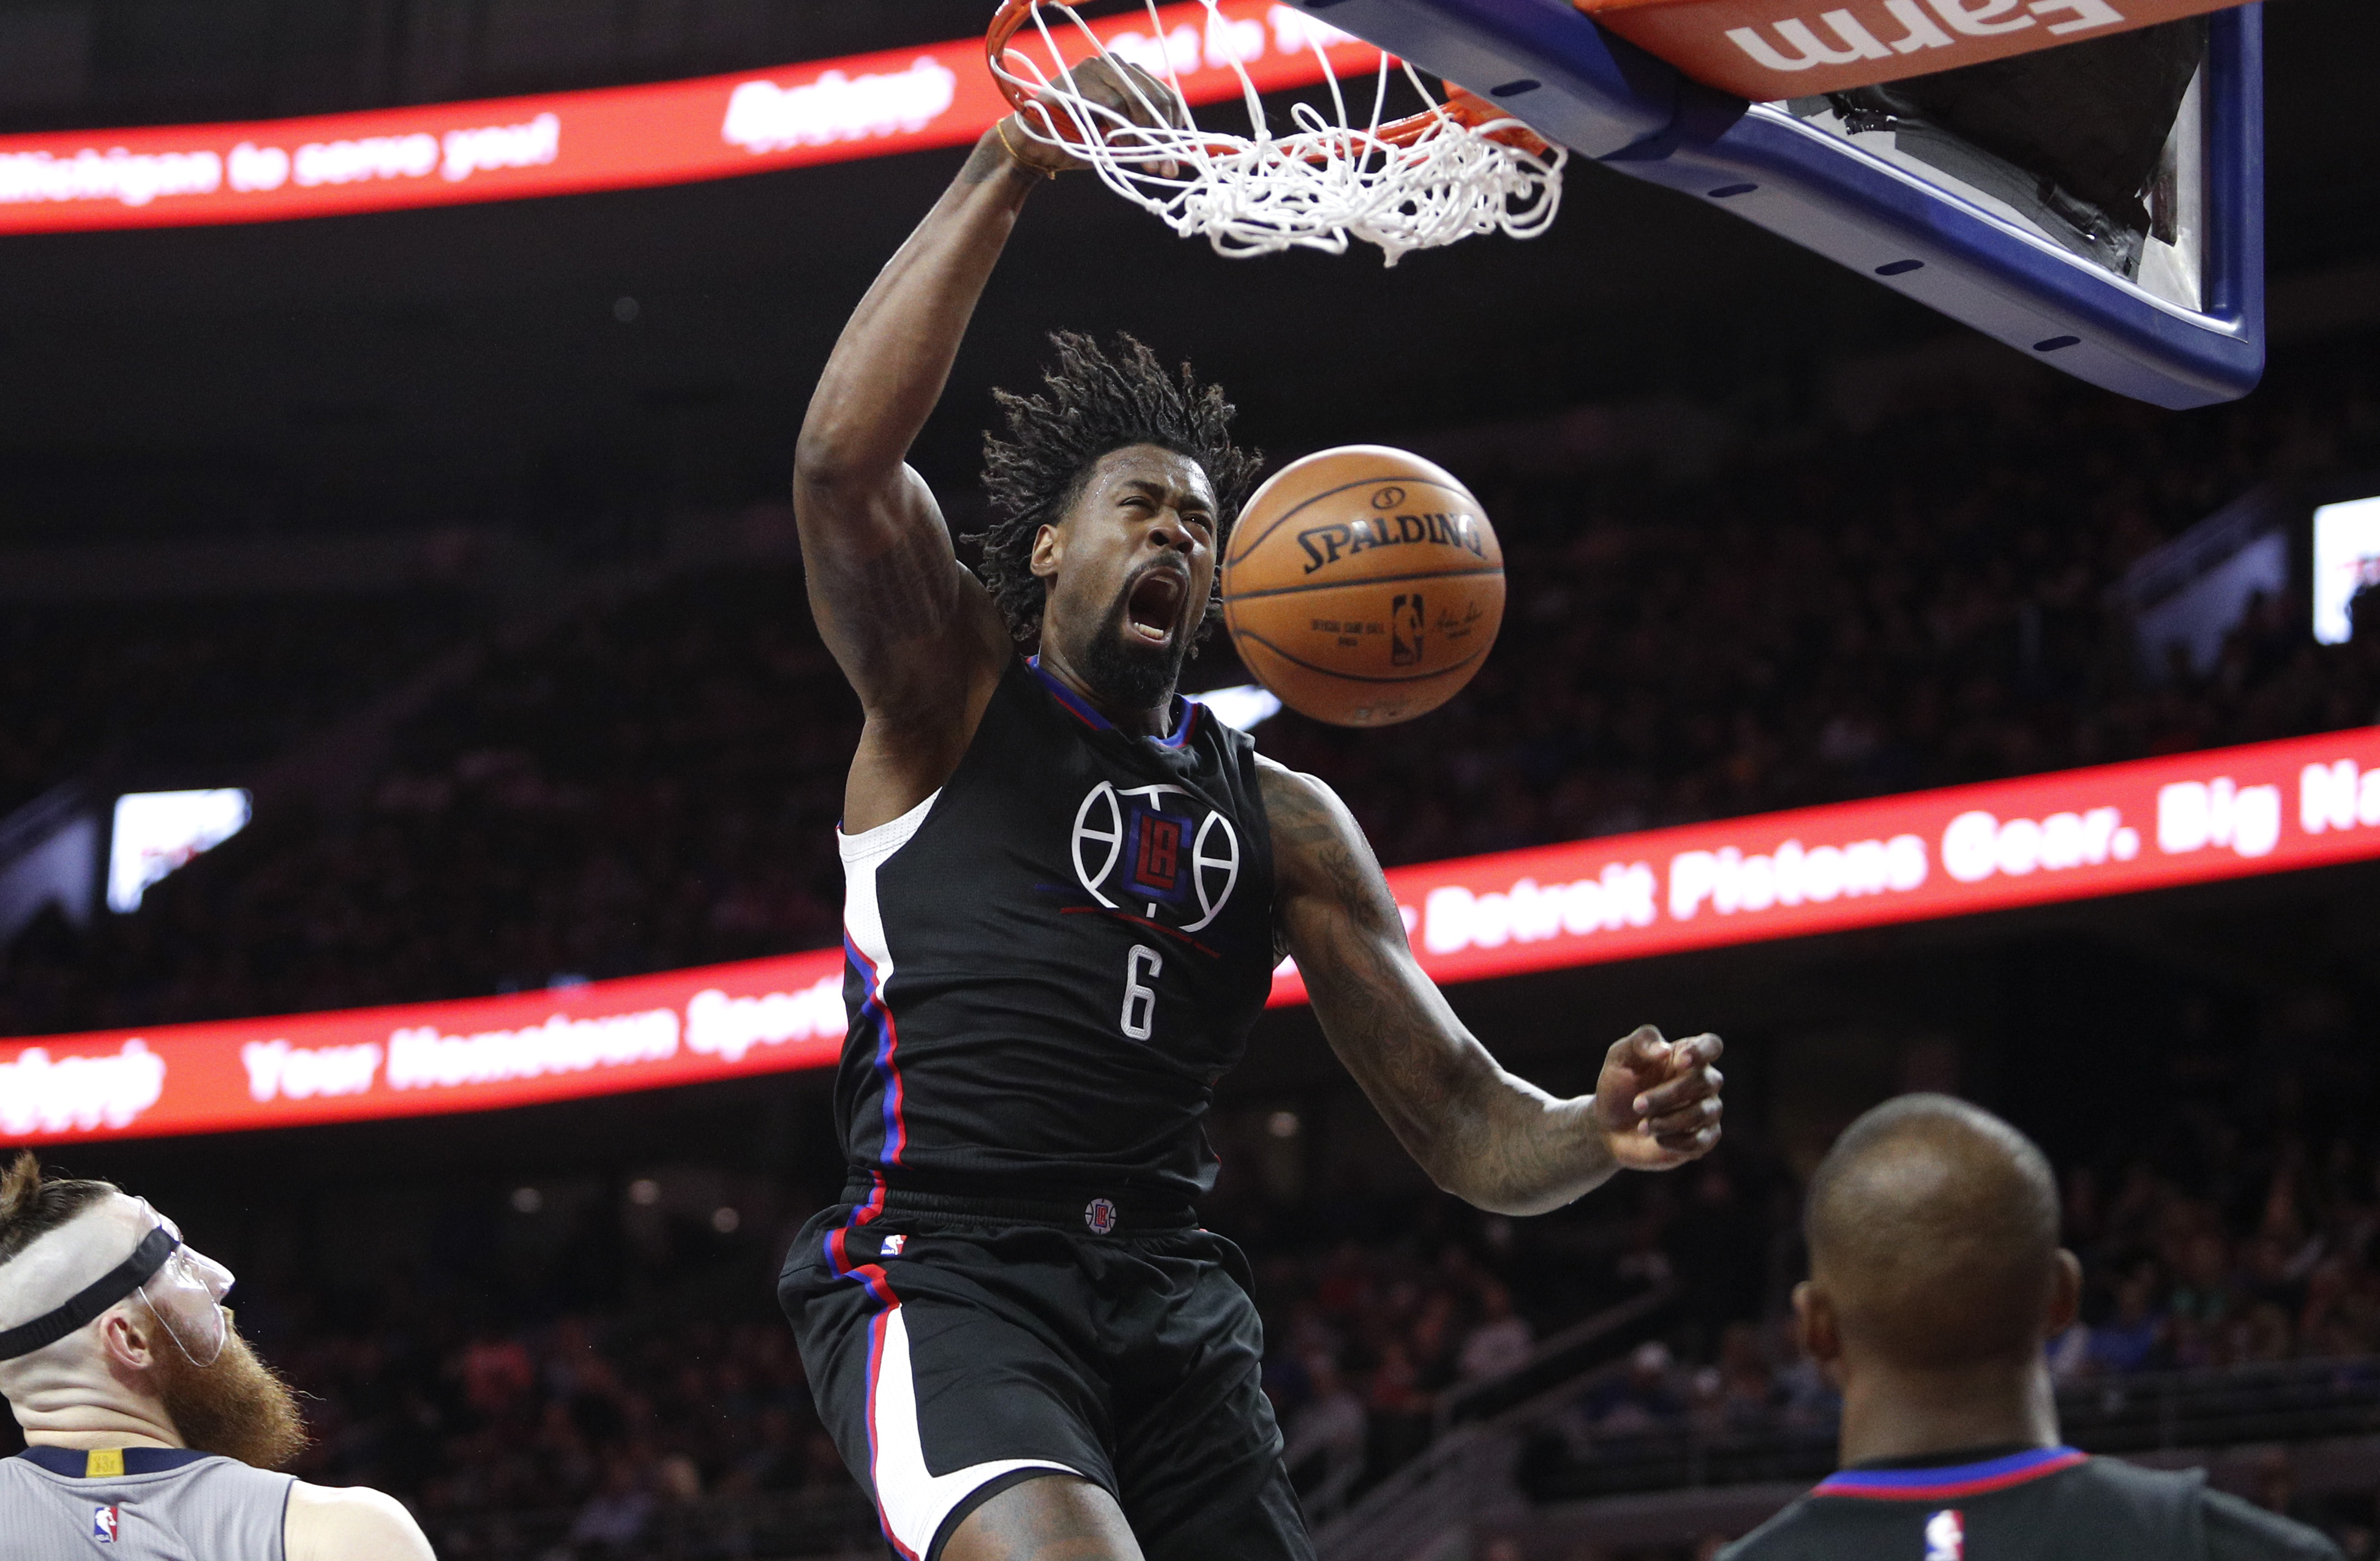 Nov 25, 2016; Auburn Hills, MI, USA; LA Clippers center DeAndre Jordan (6) makes a dunk against Detroit Pistons center Aron Baynes (12) during the second quarter at The Palace of Auburn Hills. Mandatory Credit: Raj Mehta-USA TODAY Sports